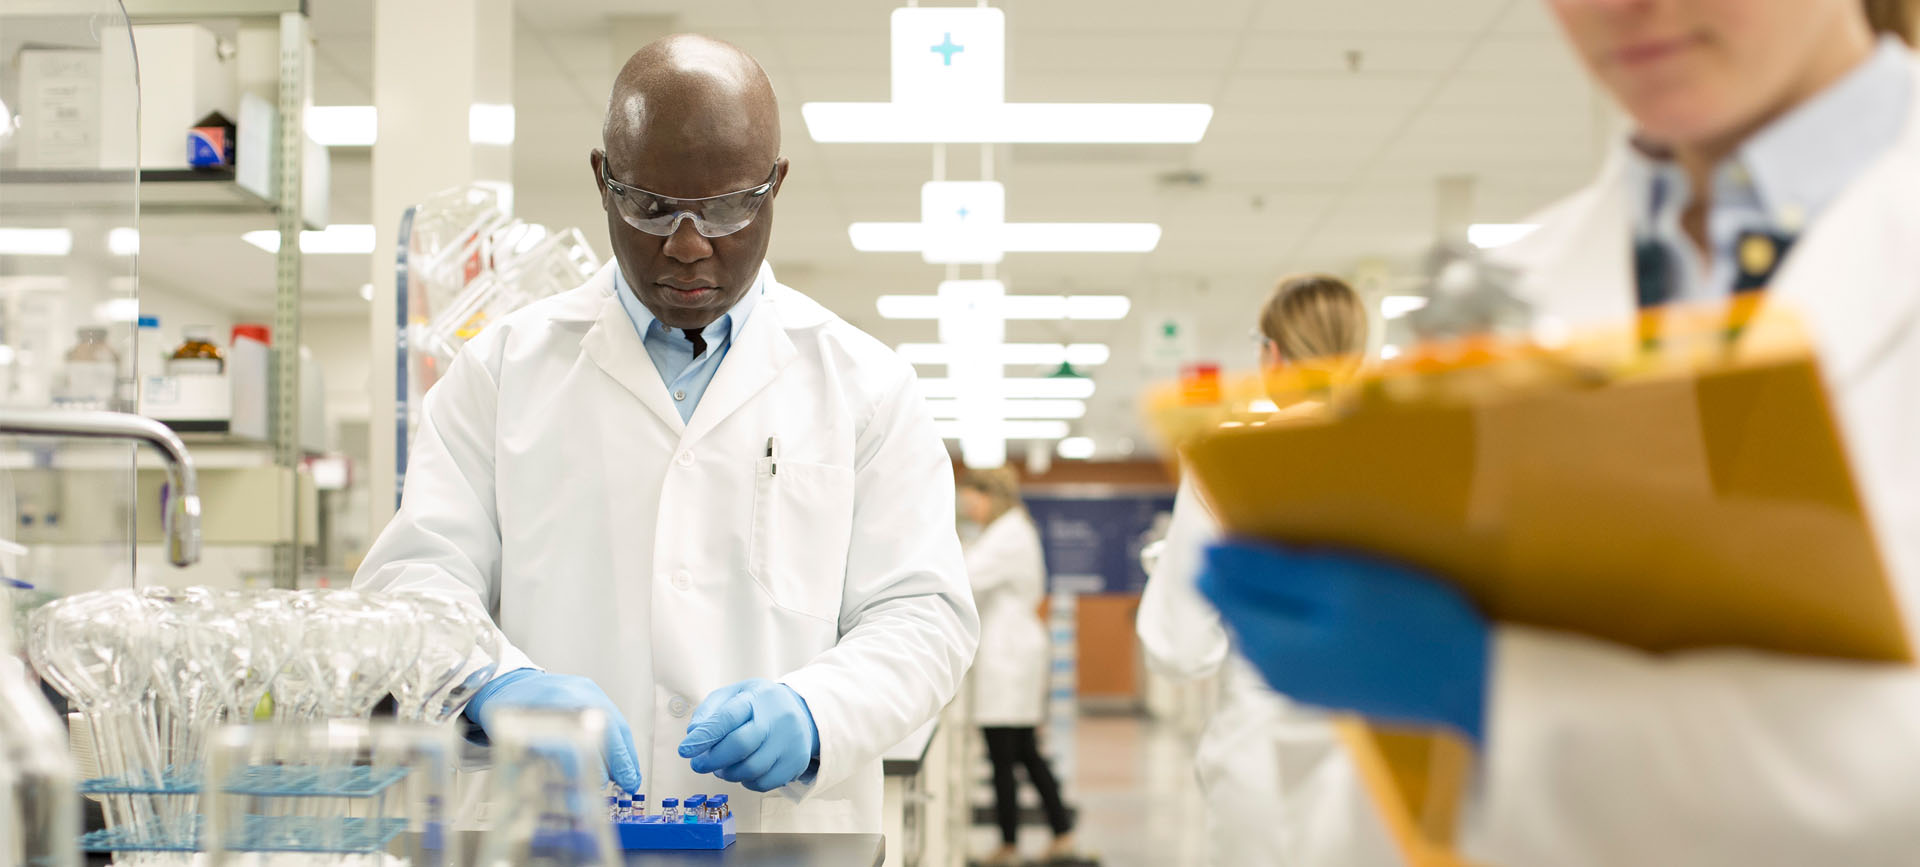 Black doctor in lab coat working on blood cancer pharmaceuticals